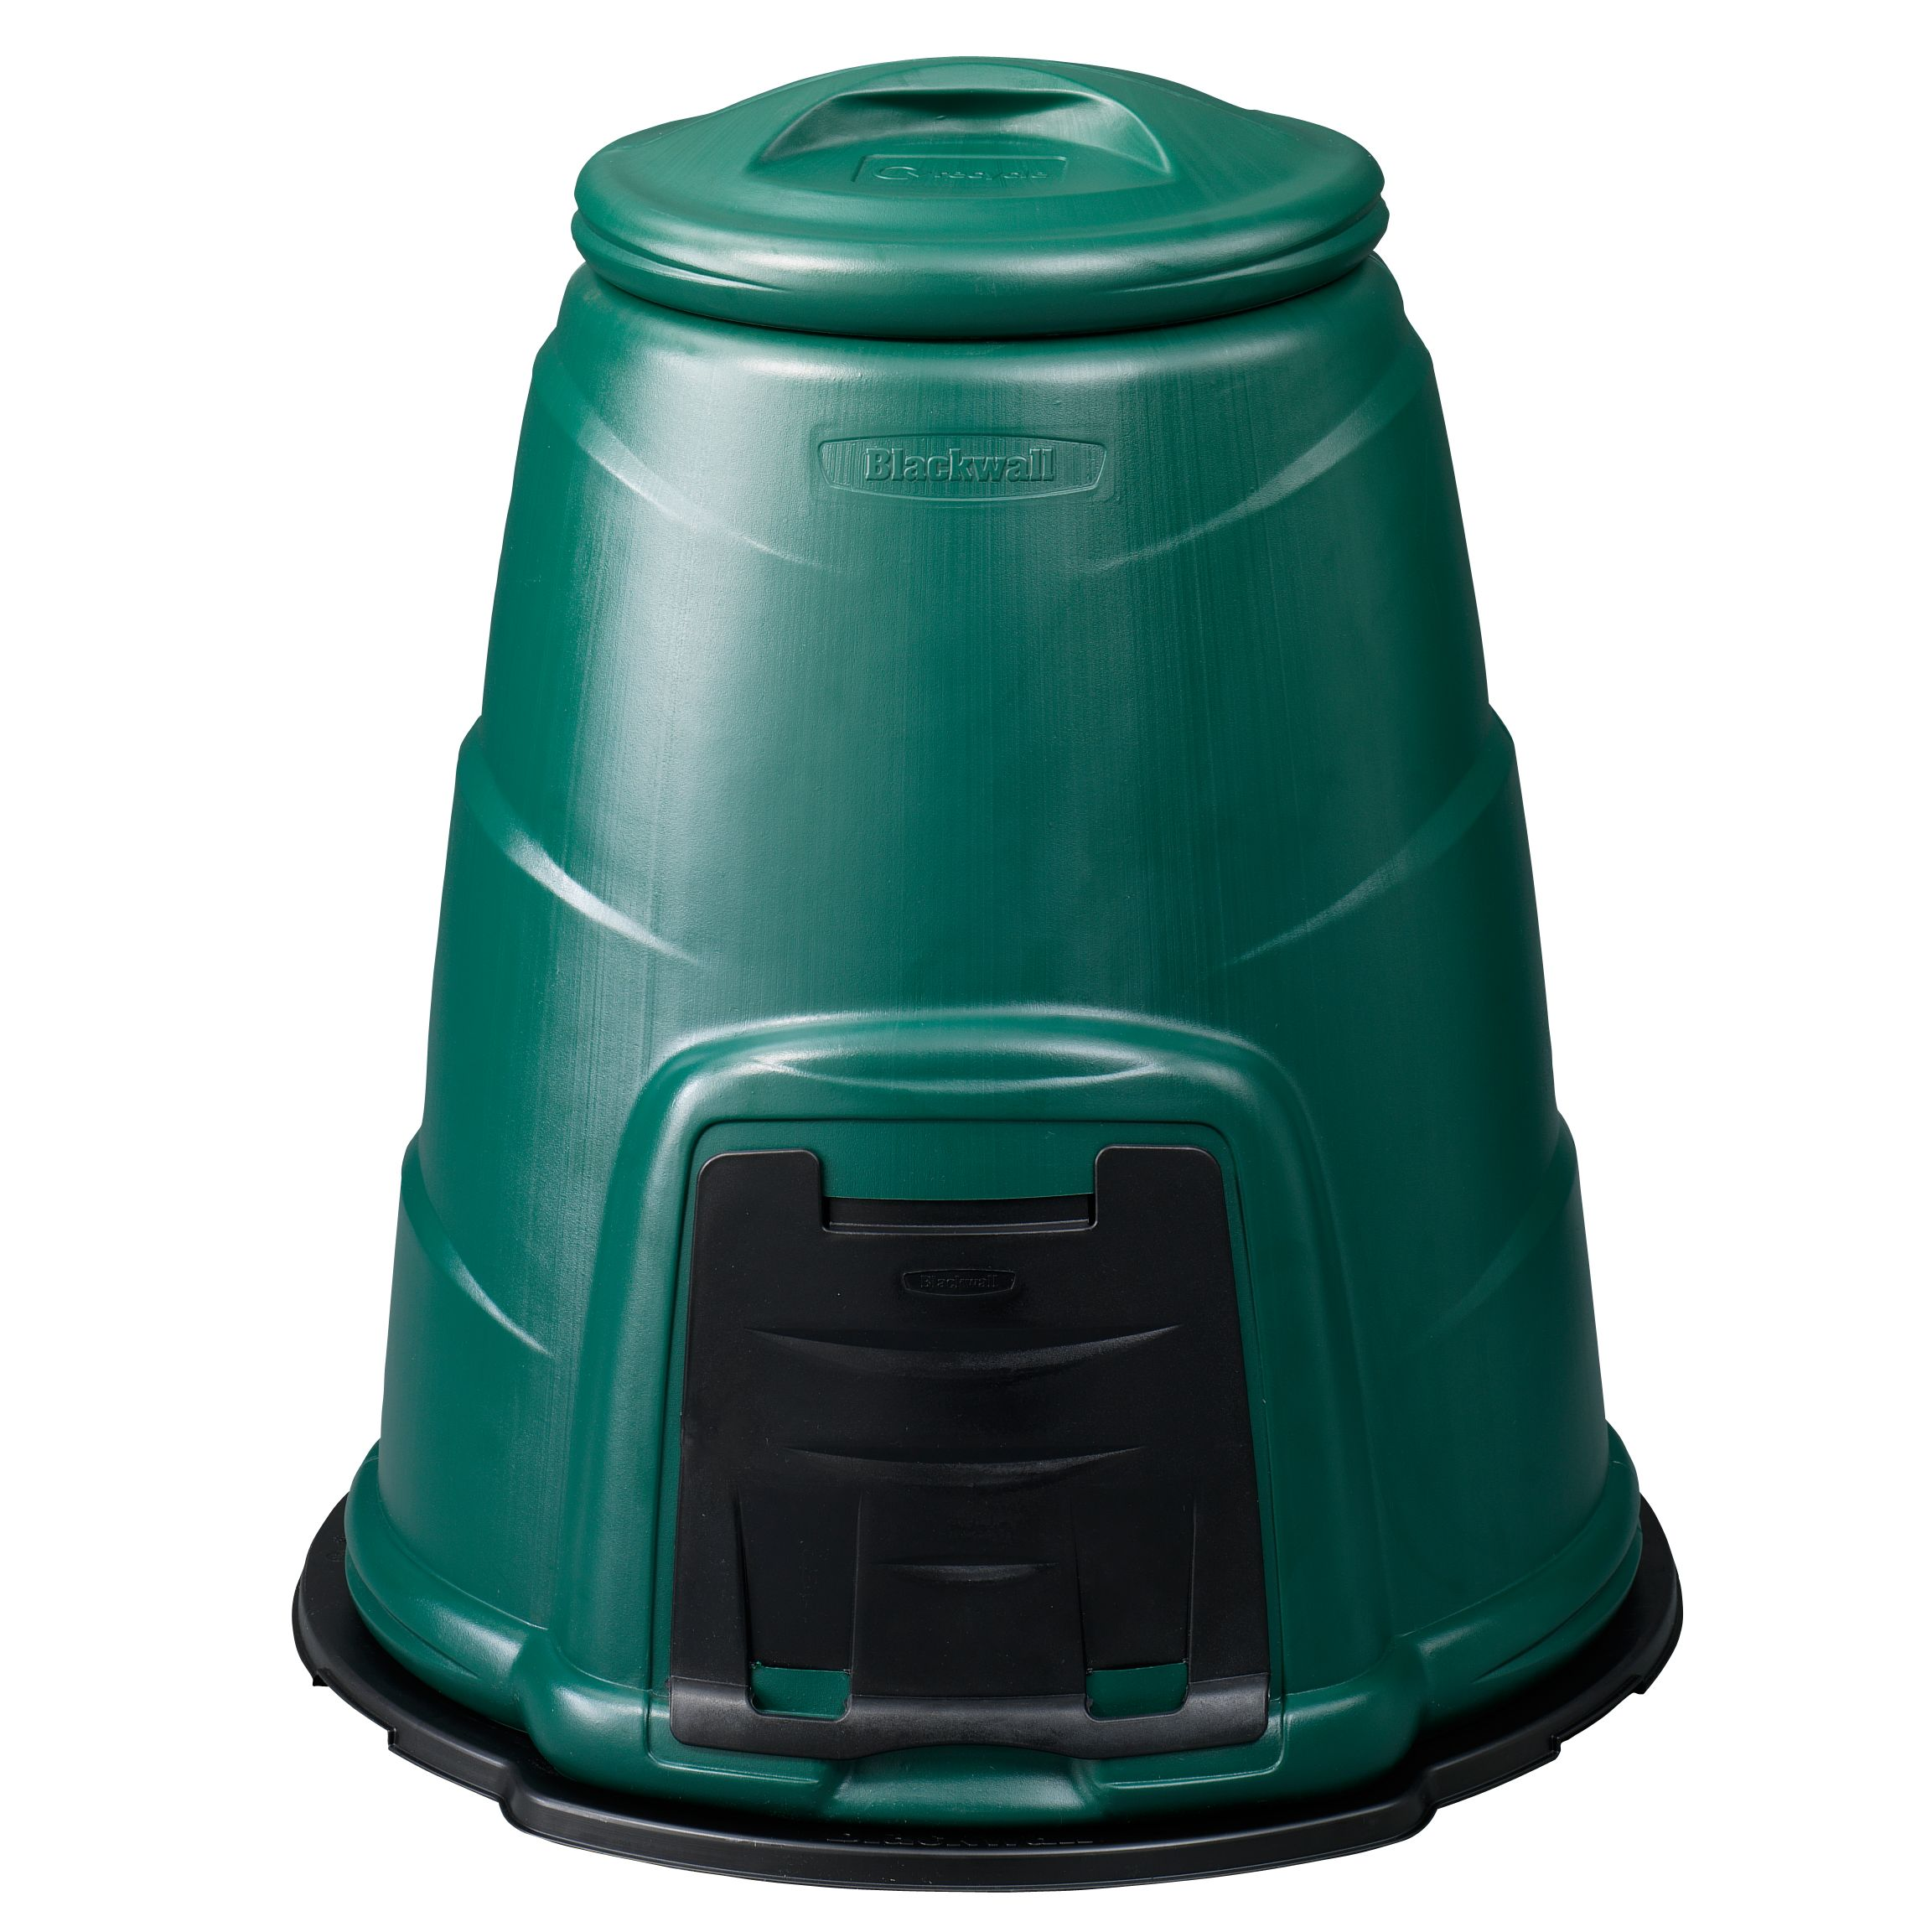 Blackwall Compost Converter, Green, 220 Litre